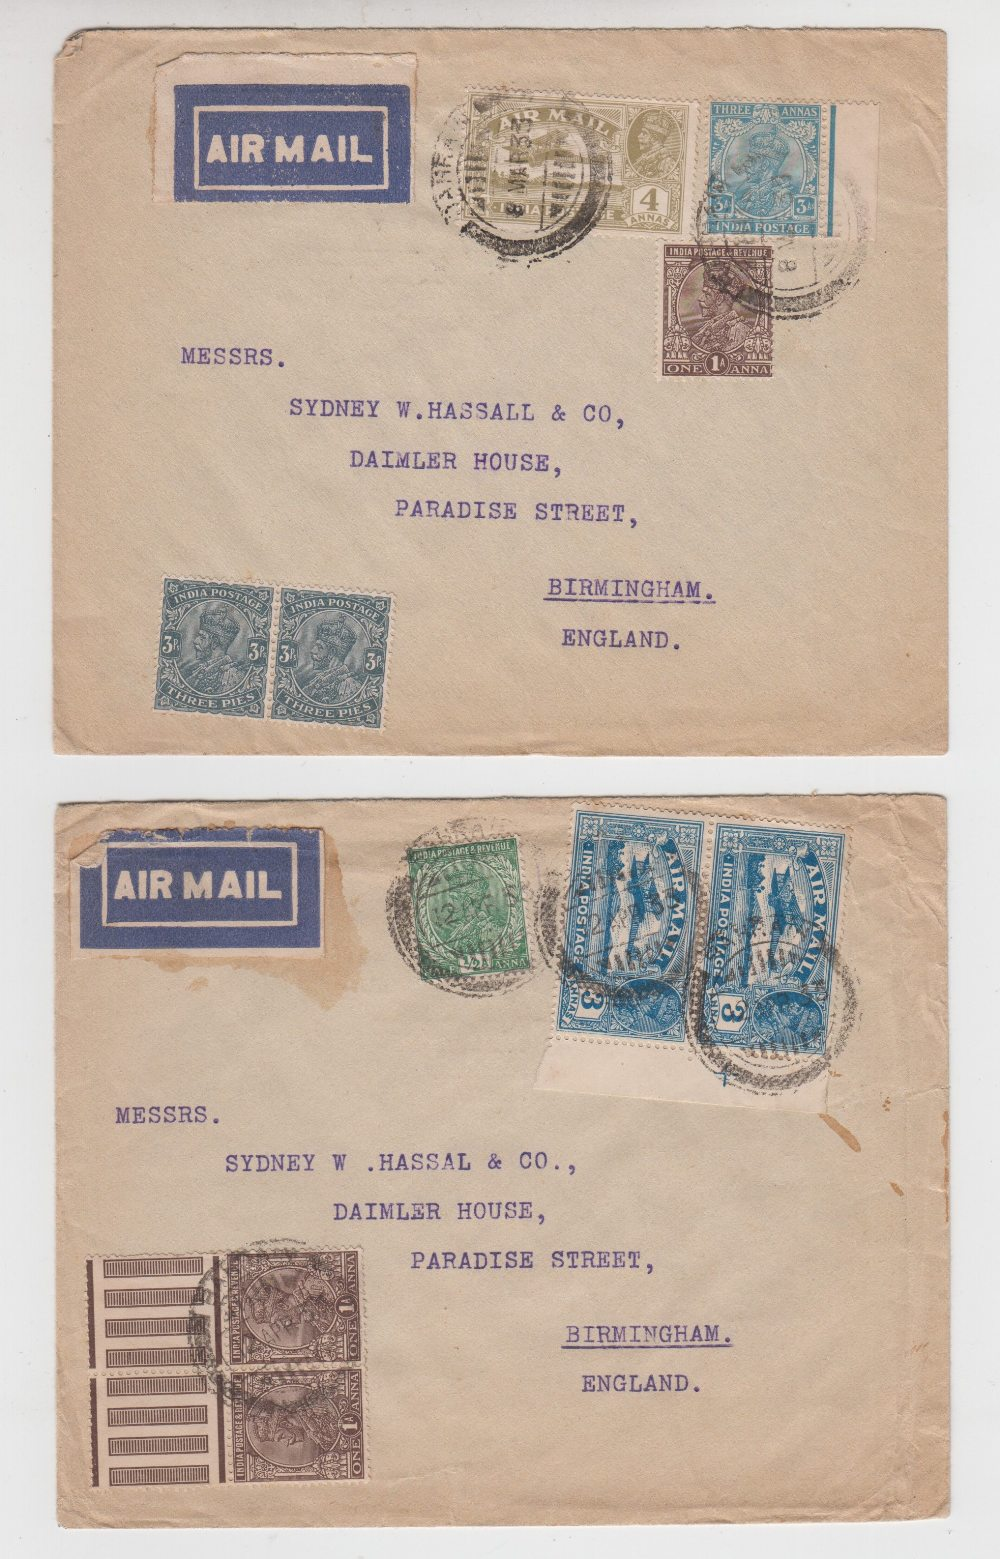 Lot 21 - Postal History, 3 postally used envelopes, 1930s, each one posted in Bahrain and sent to a UK